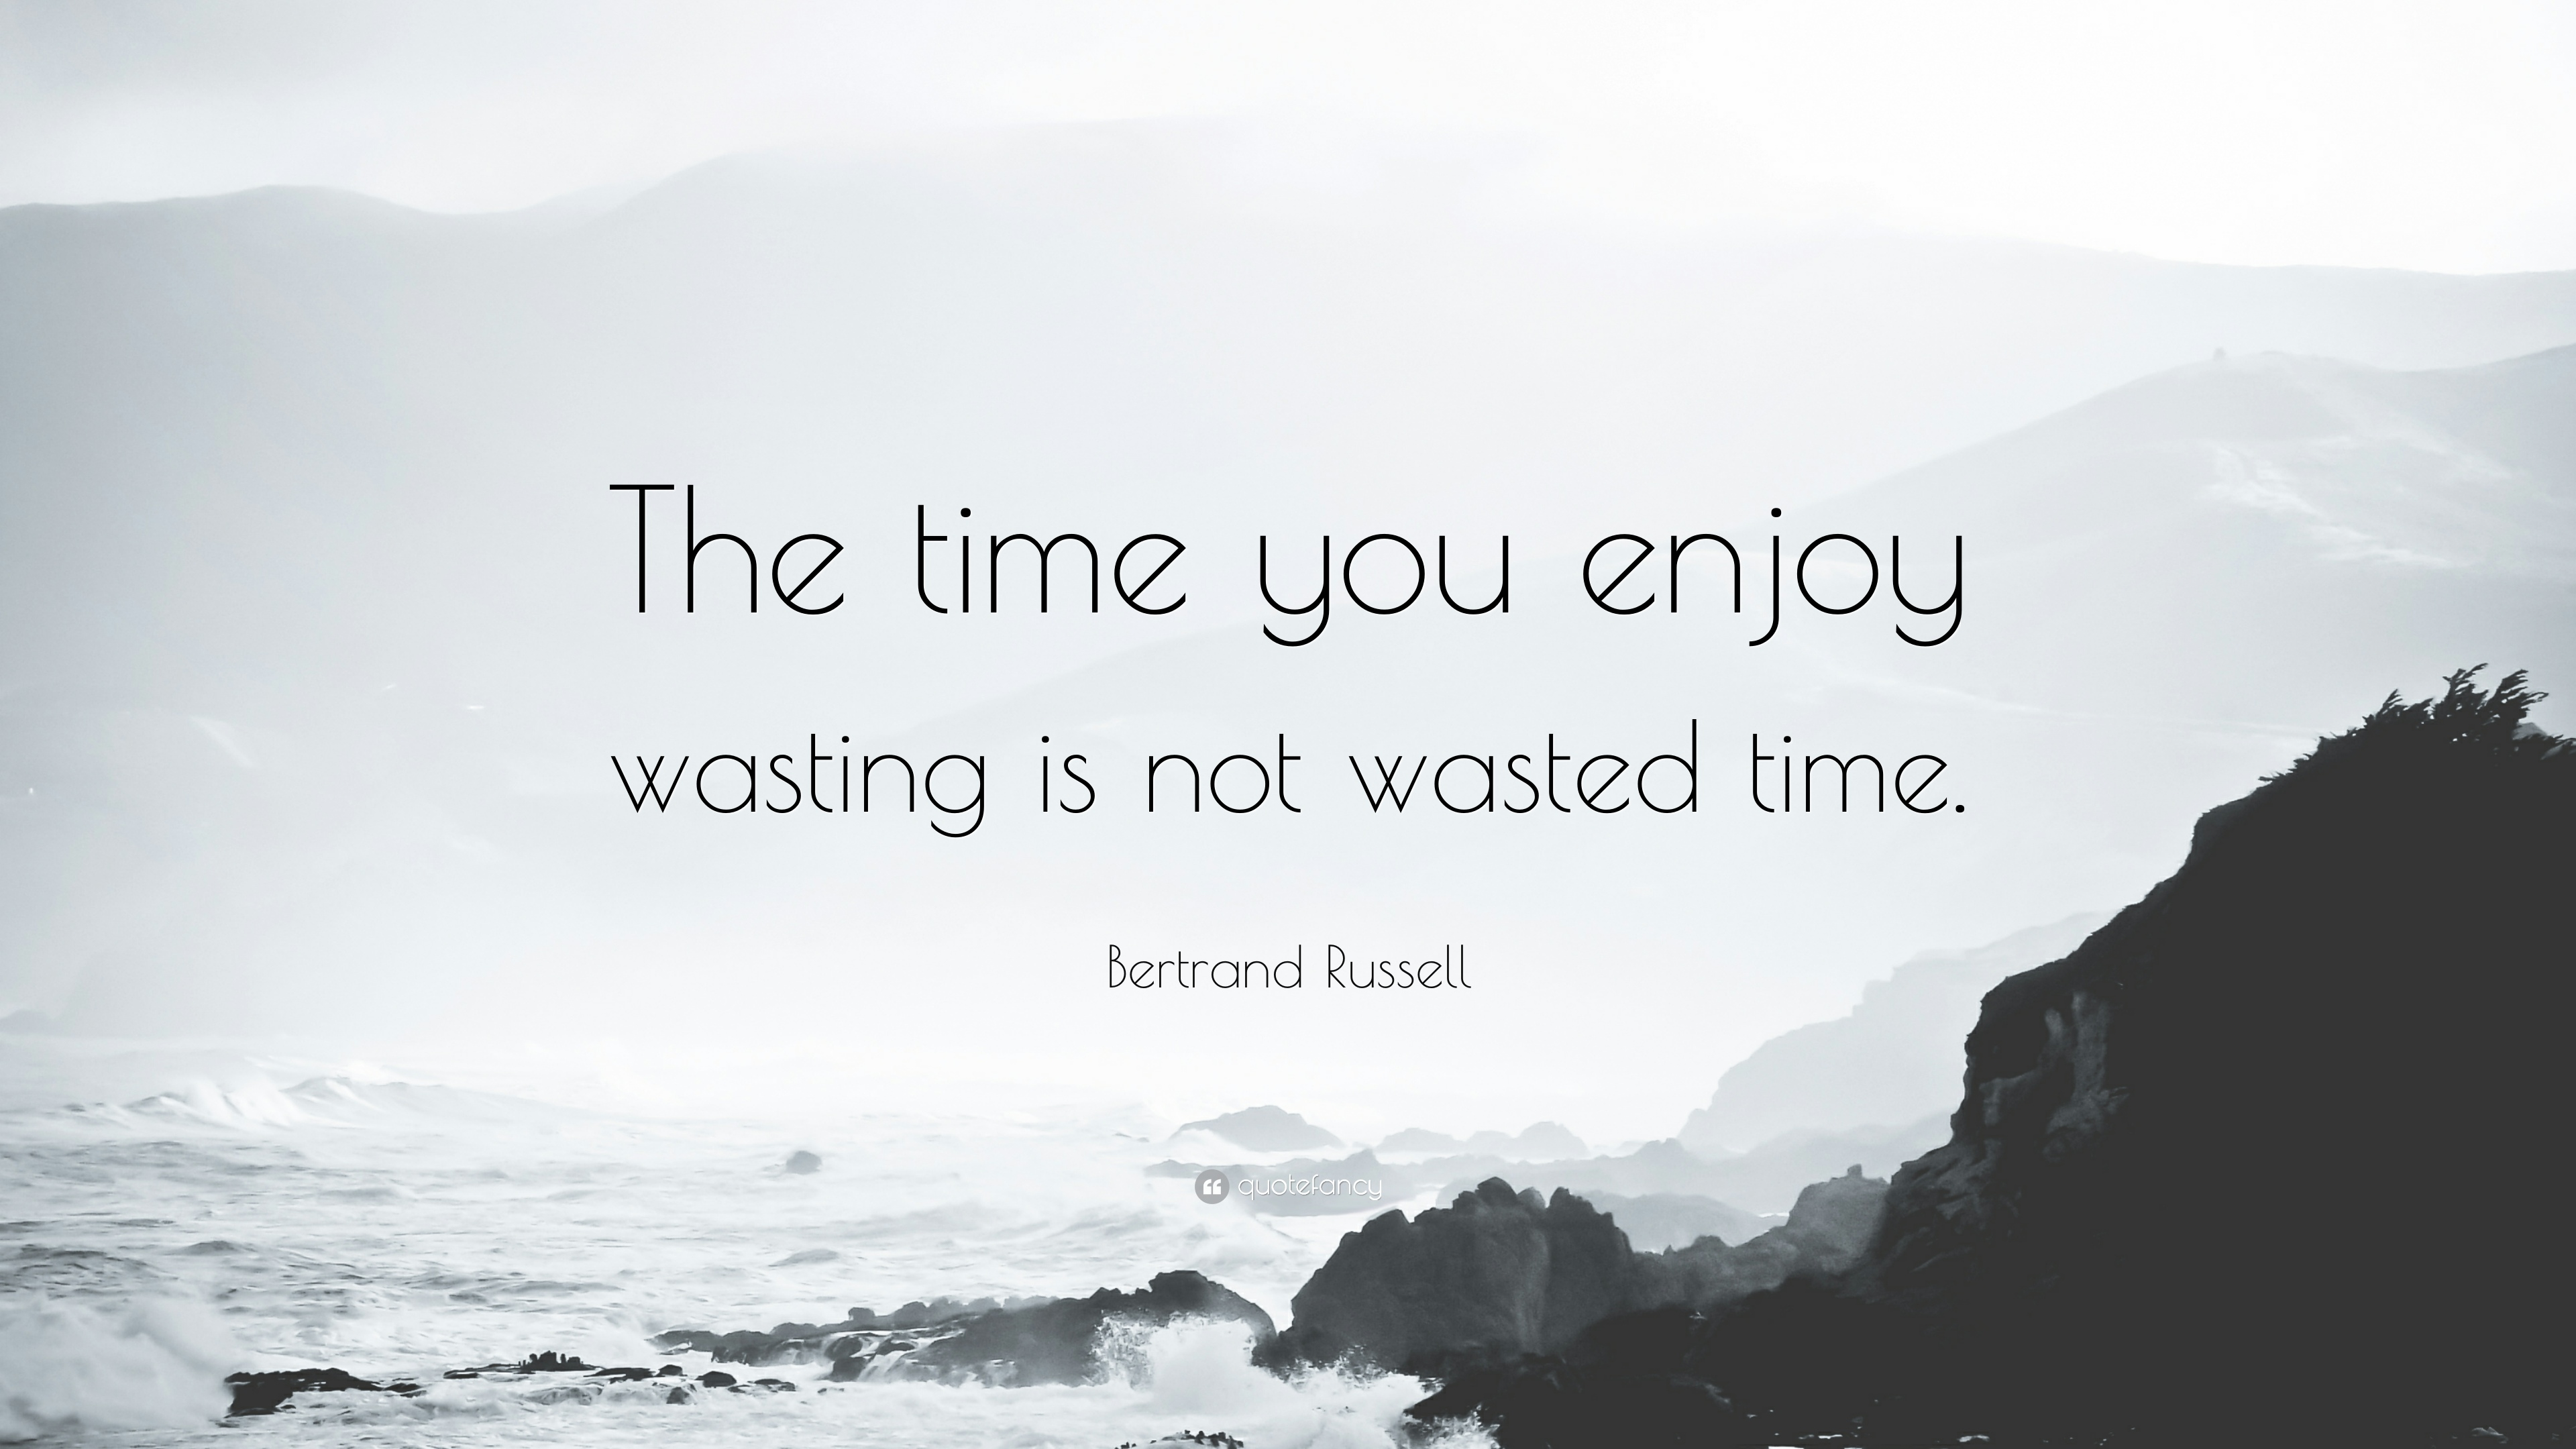 bertrand russell quotes quotefancy